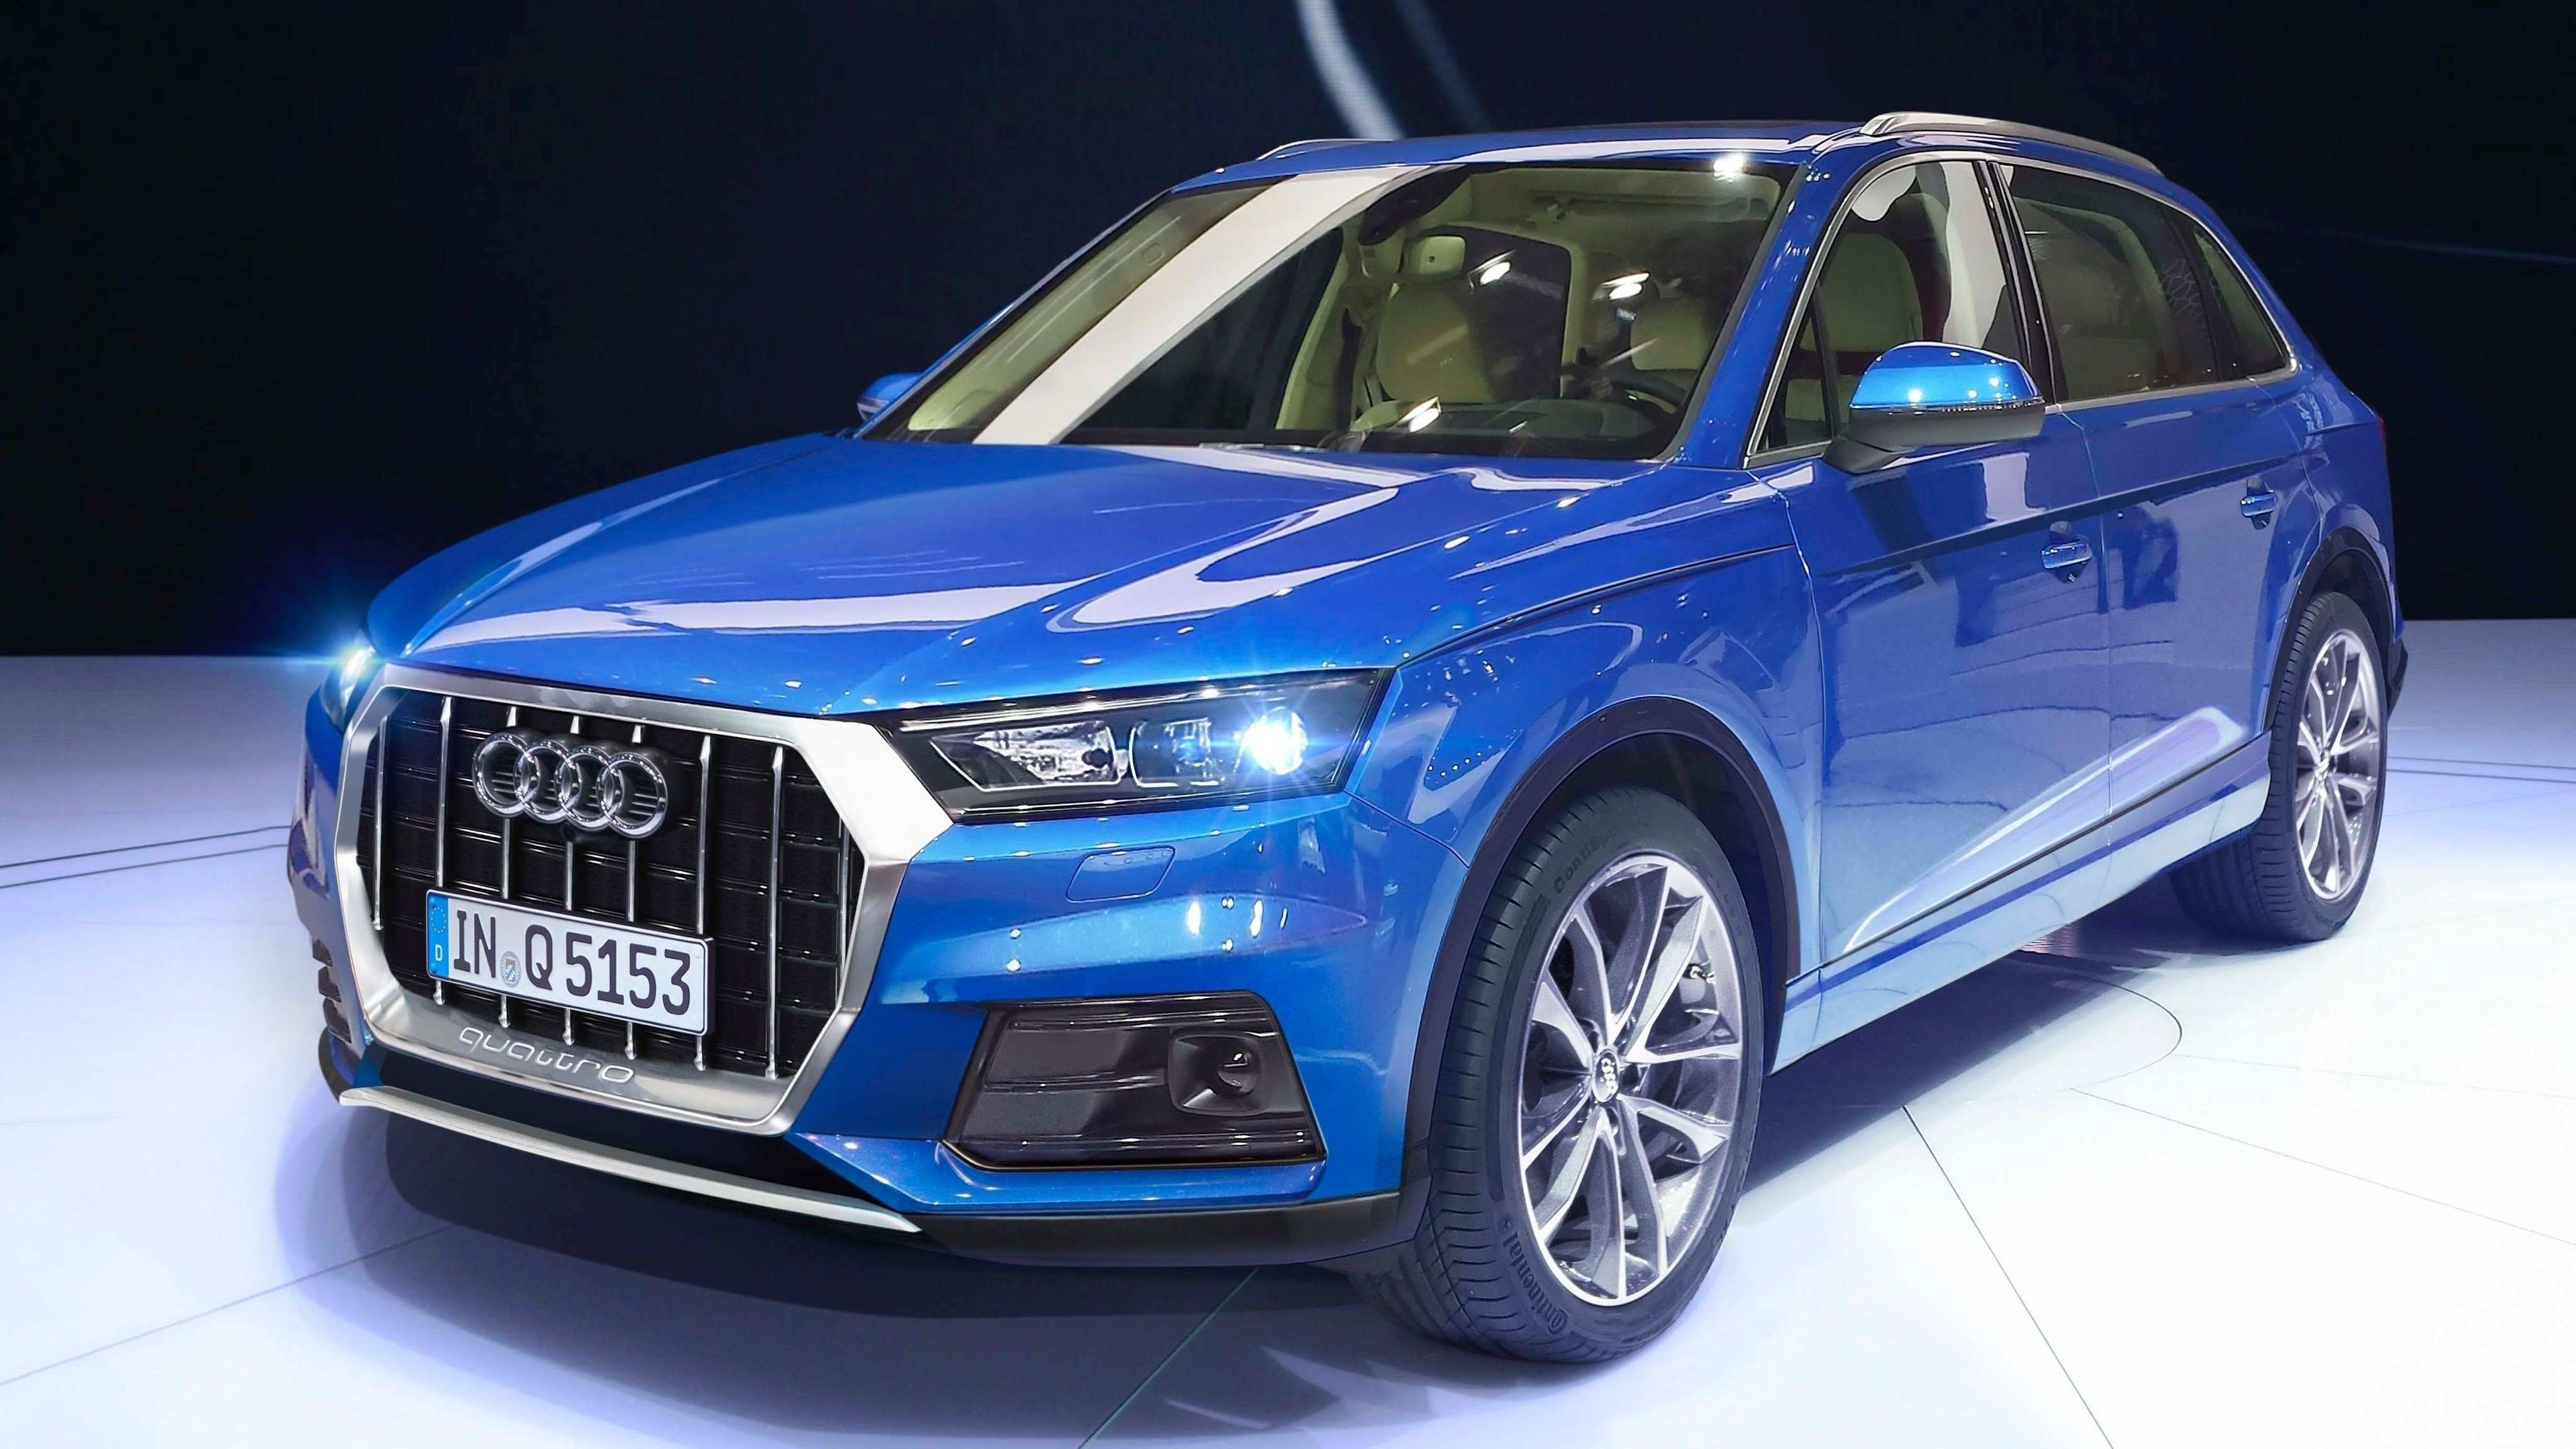 57 New When Does The 2020 Audi Q5 Come Out History